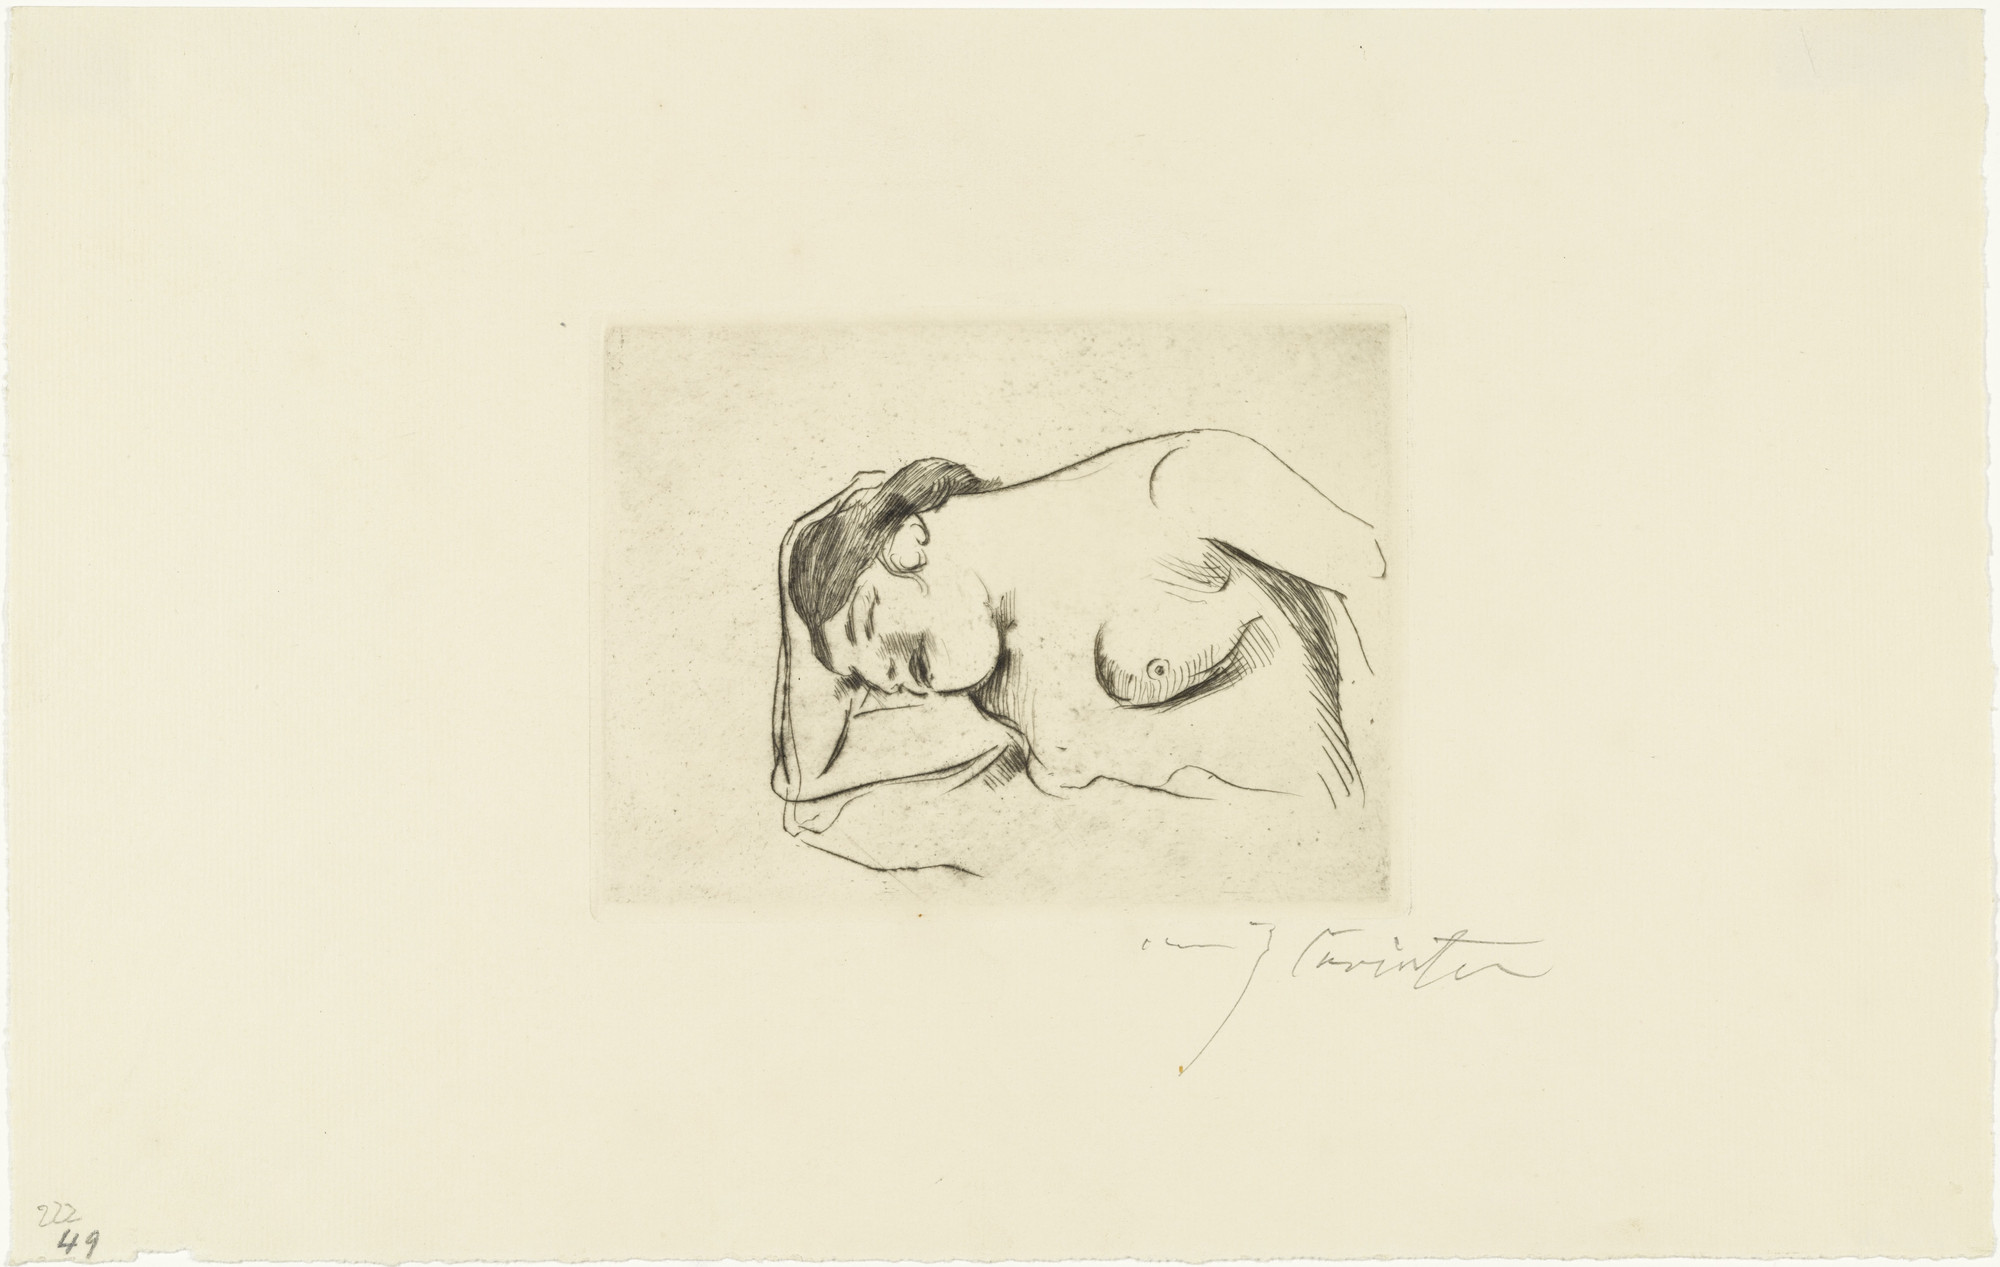 Lovis Corinth. Woman Half-Nude, Sleeping (Weiblicher halbakt, schlafend). (1910)